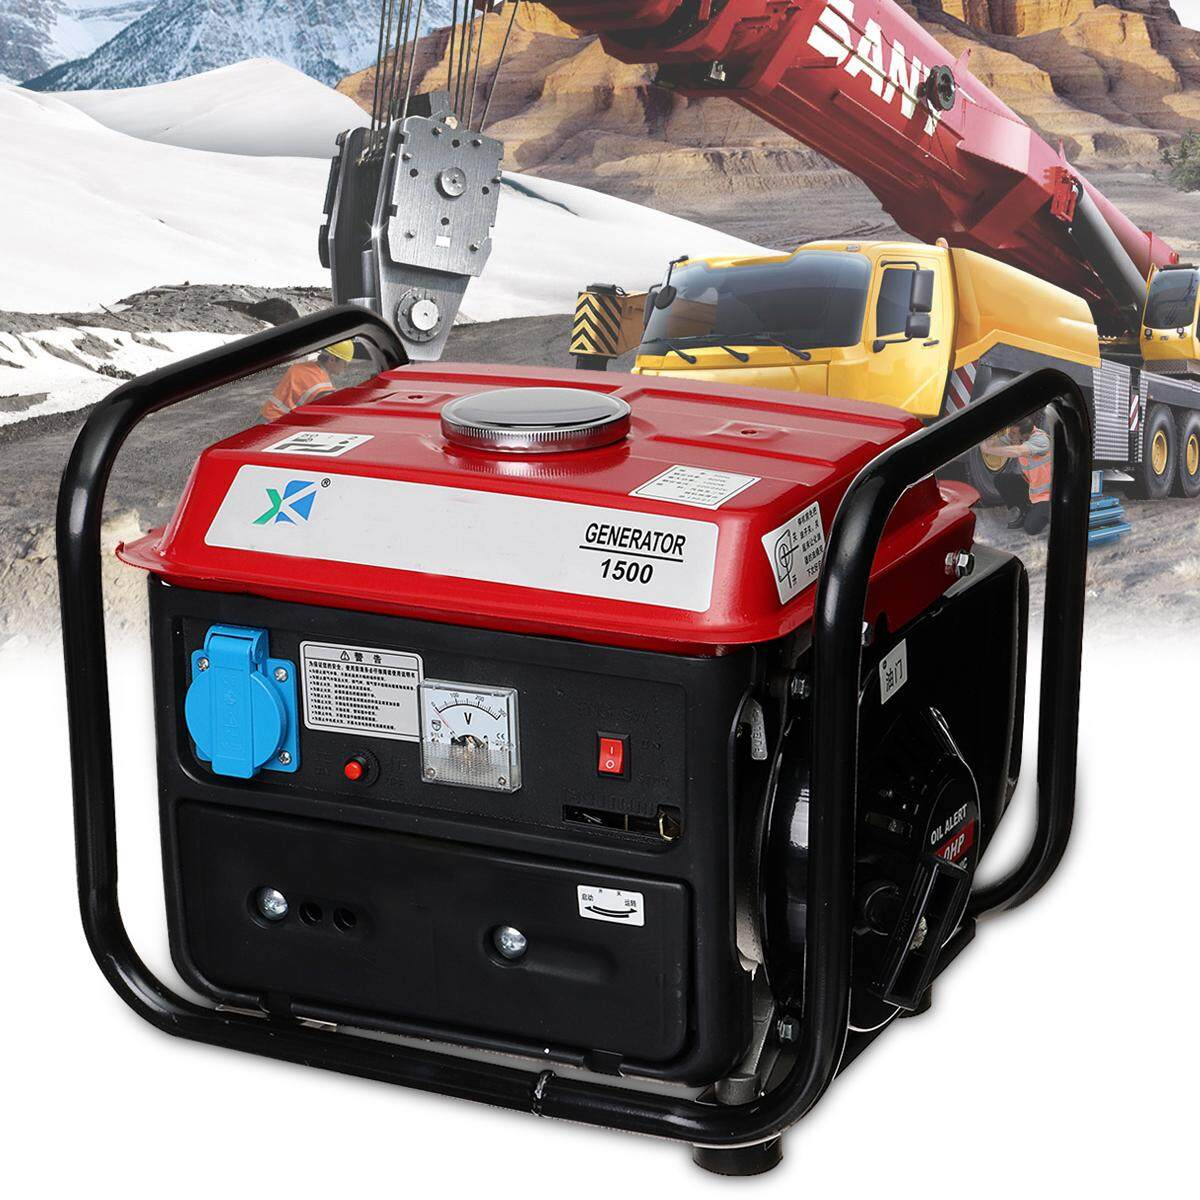 Portable Gas Inverter Generator Emergency Outdoor Home Back Up Power Tailgating - Intl By Audew.